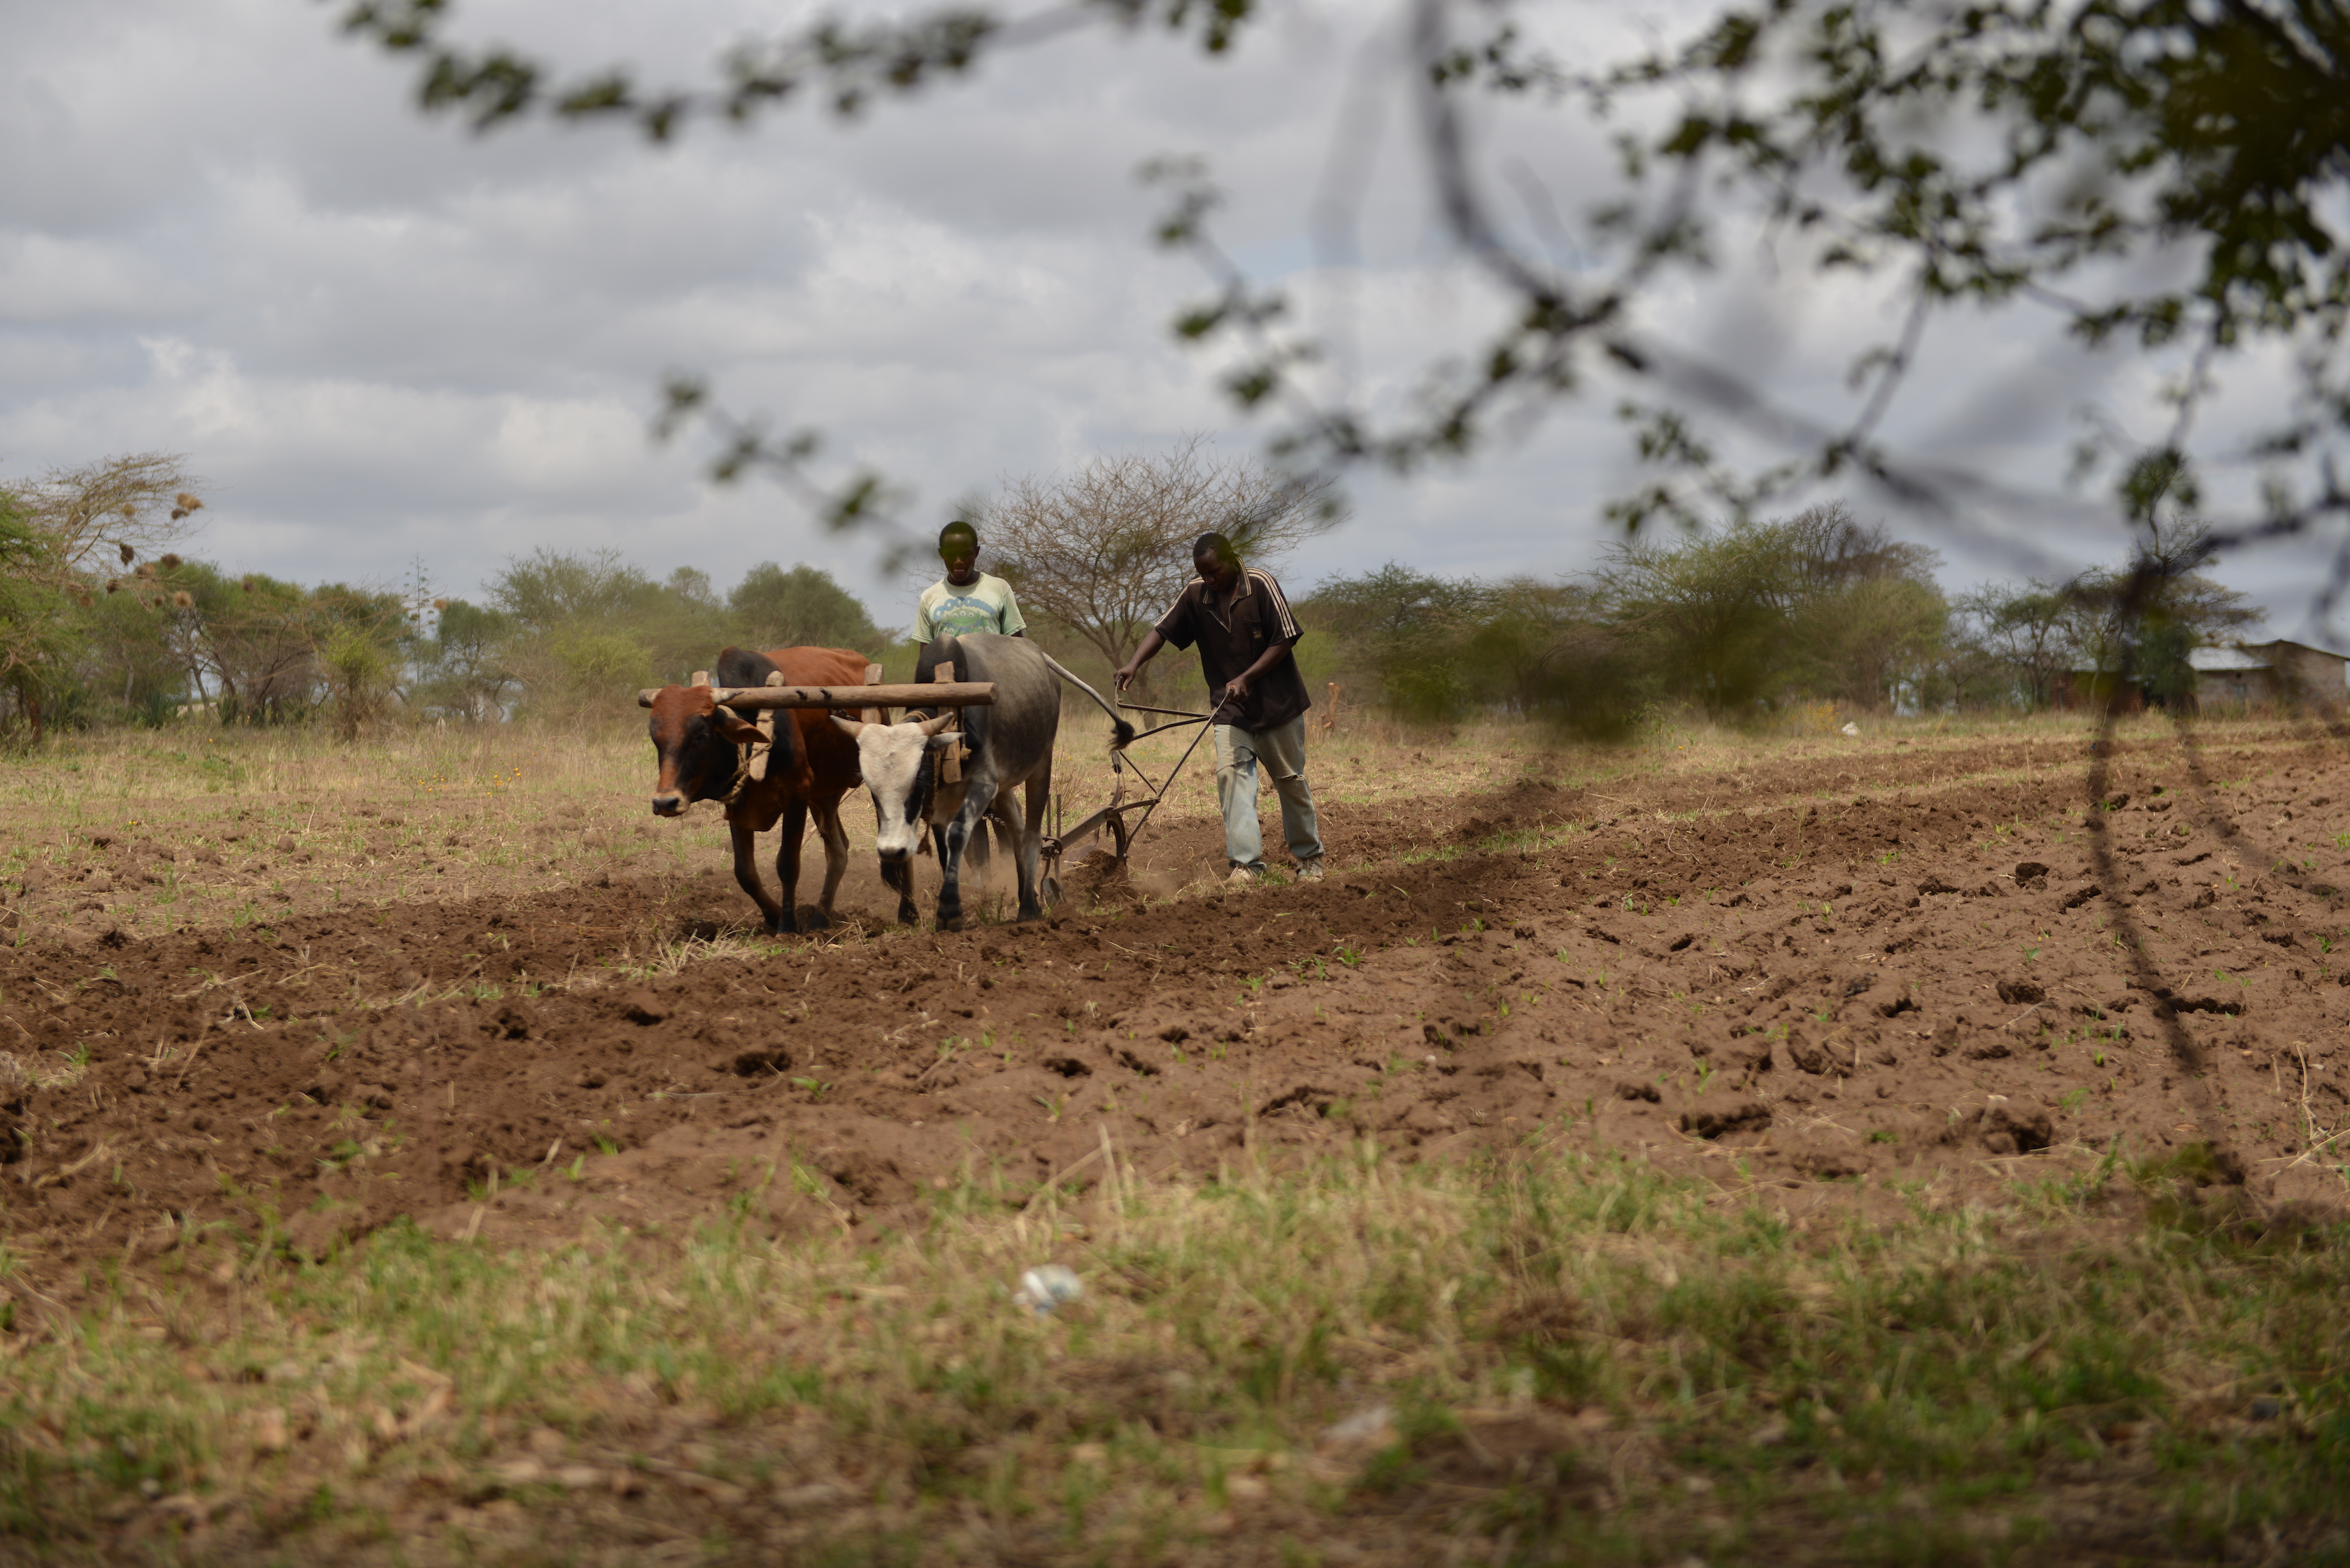 POLICY SERIES: global agroecological transitions to sustainable farming: Kenya